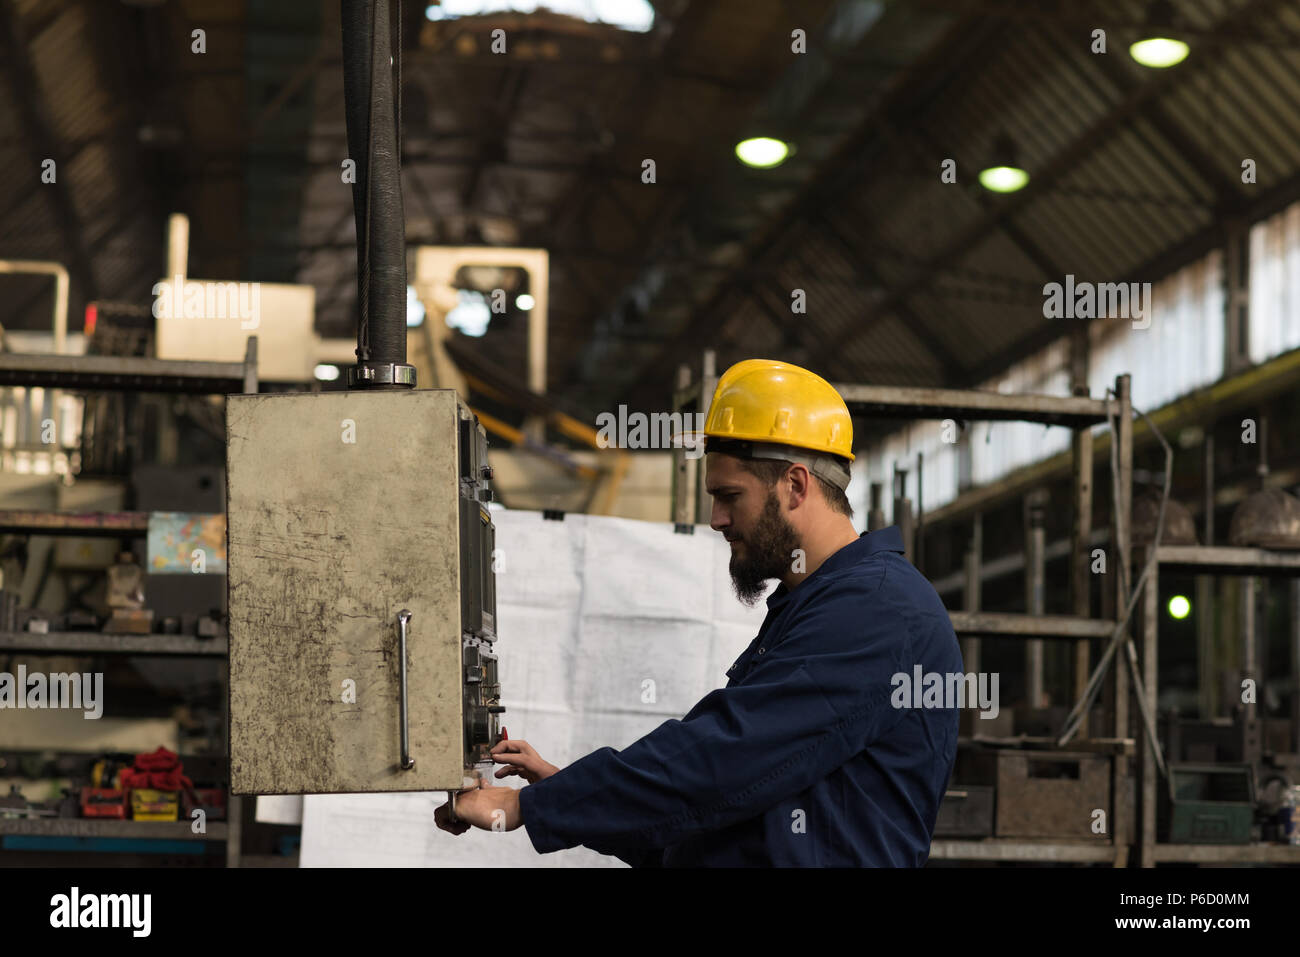 Technician checking machine in factory - Stock Image